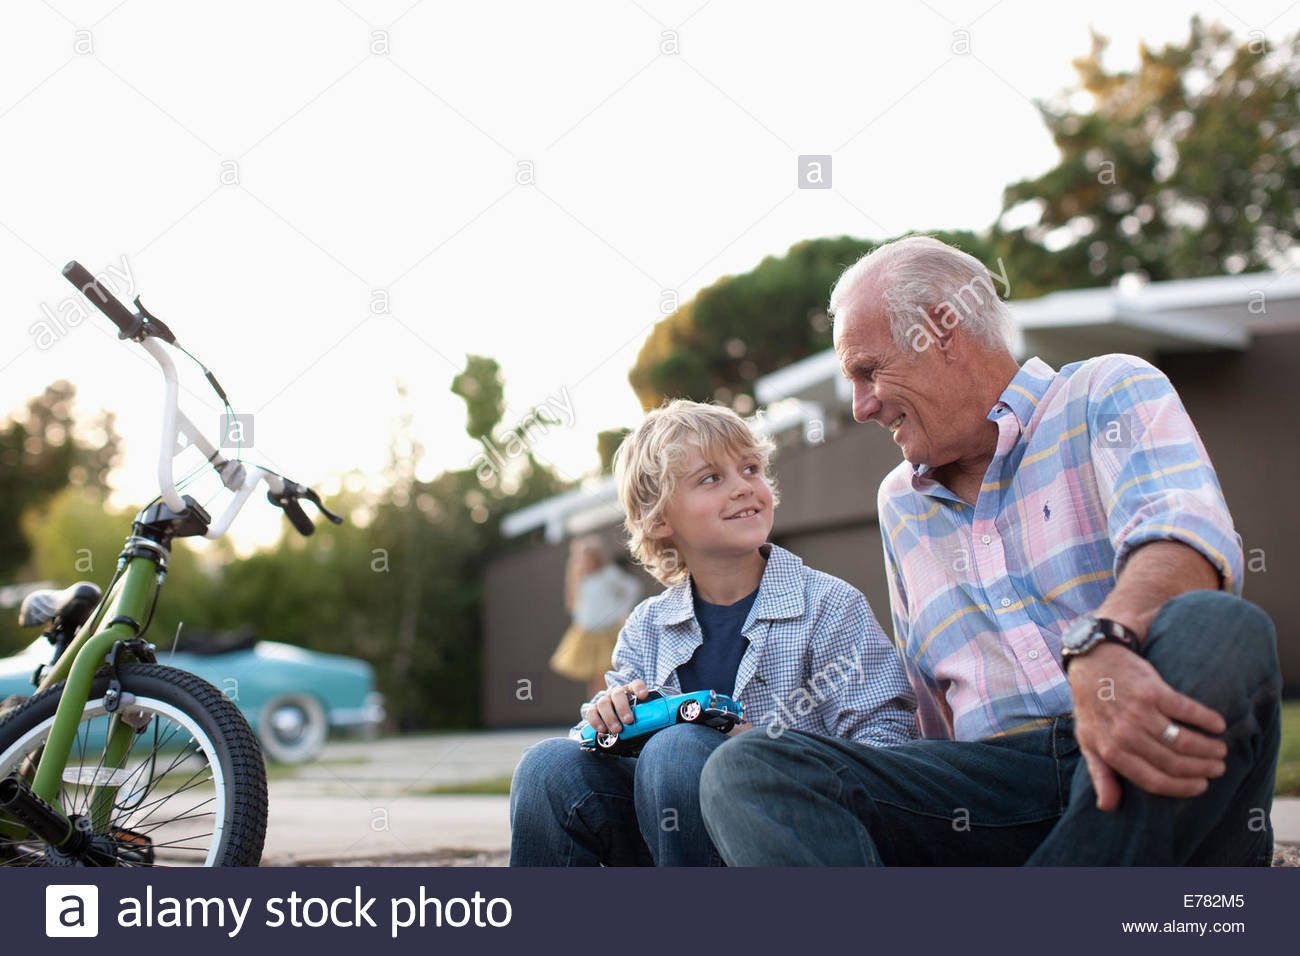 Older man and grandson sitting together - Stock Image